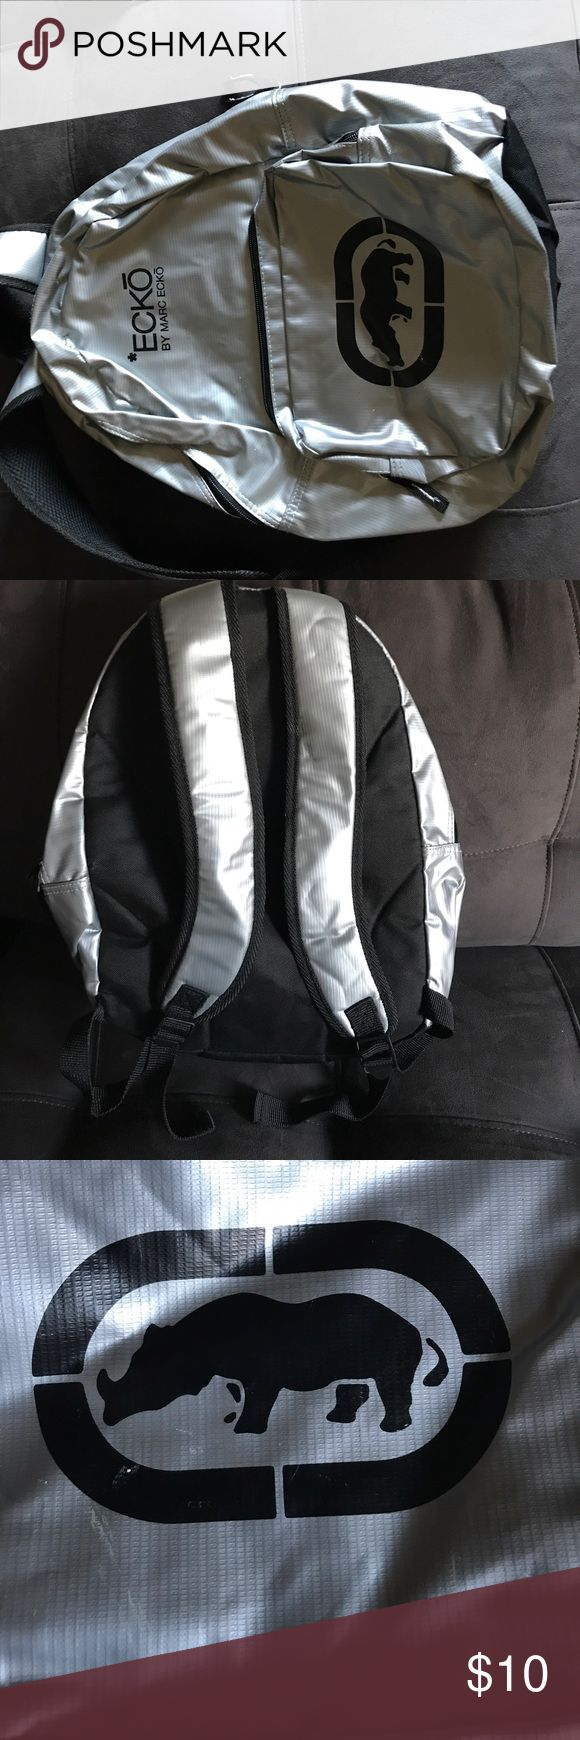 Ecko book bag Silver and black Ecko bookbag Ecko Unlimited Bags Backpacks